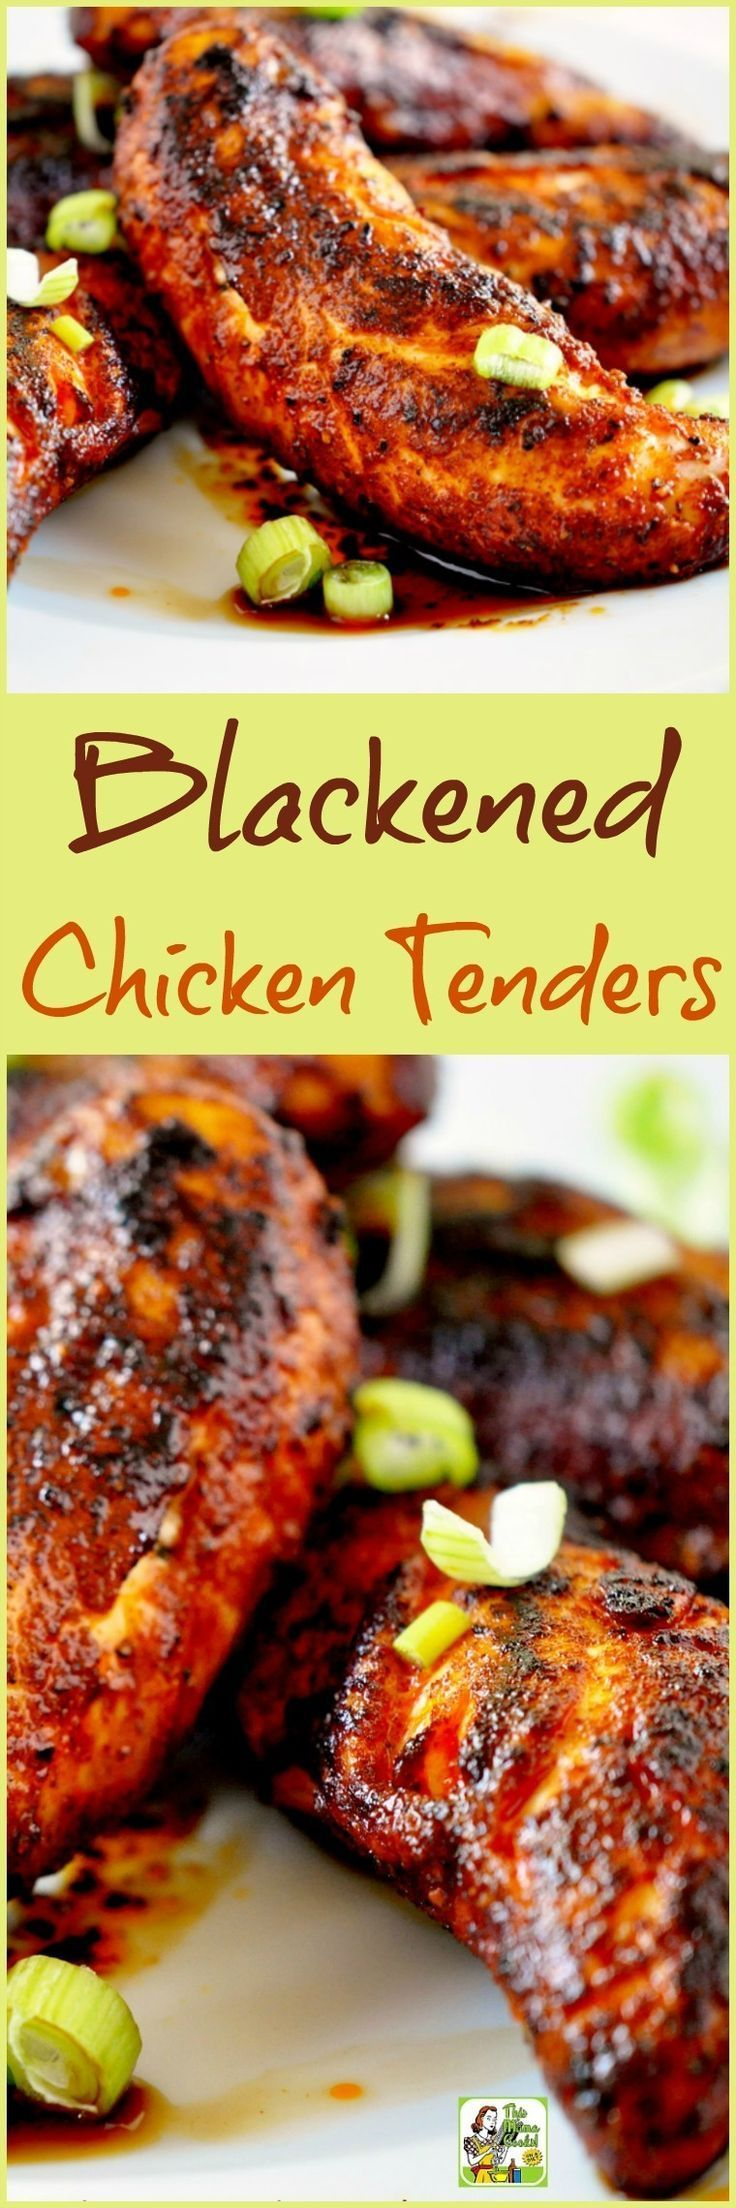 Make this quick, easy and healthy Blackened Chicken Tenders recipe for dinner or as a spicy and healthy party appetizer. @Holly Clegg